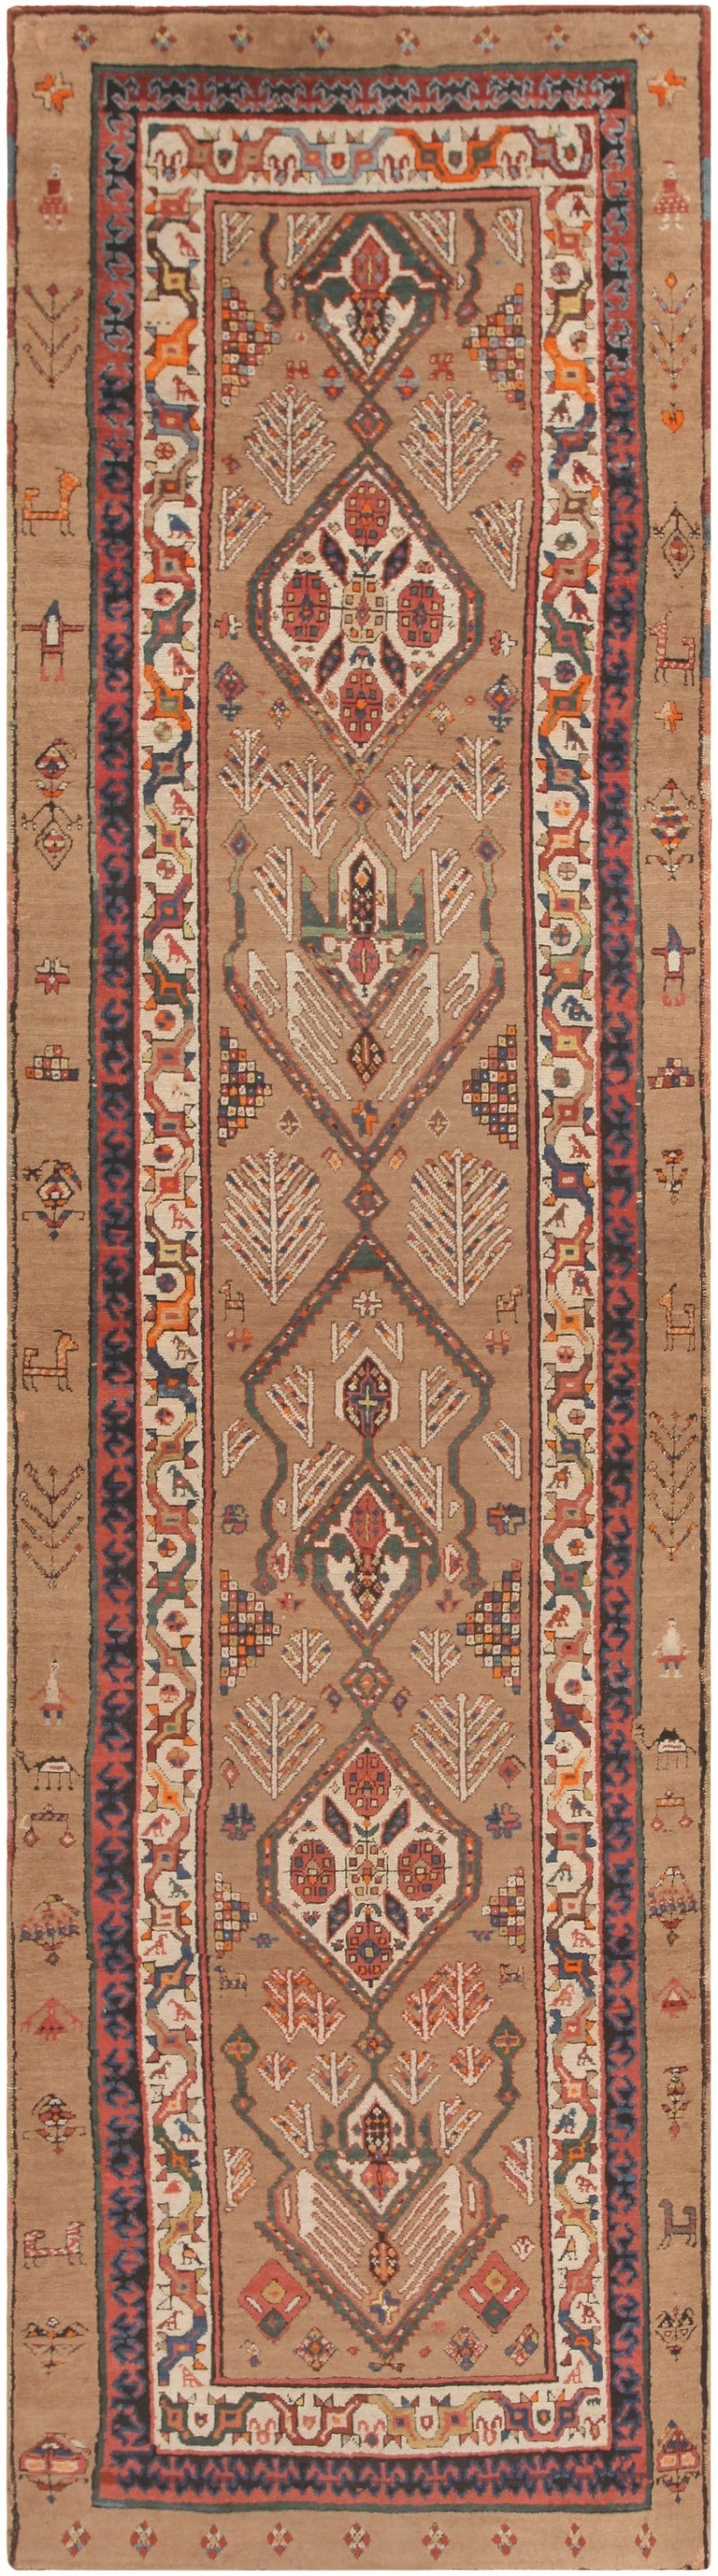 Persian Rug Runner Rugs Ideas For Persian Carpet Runners (View 14 of 15)